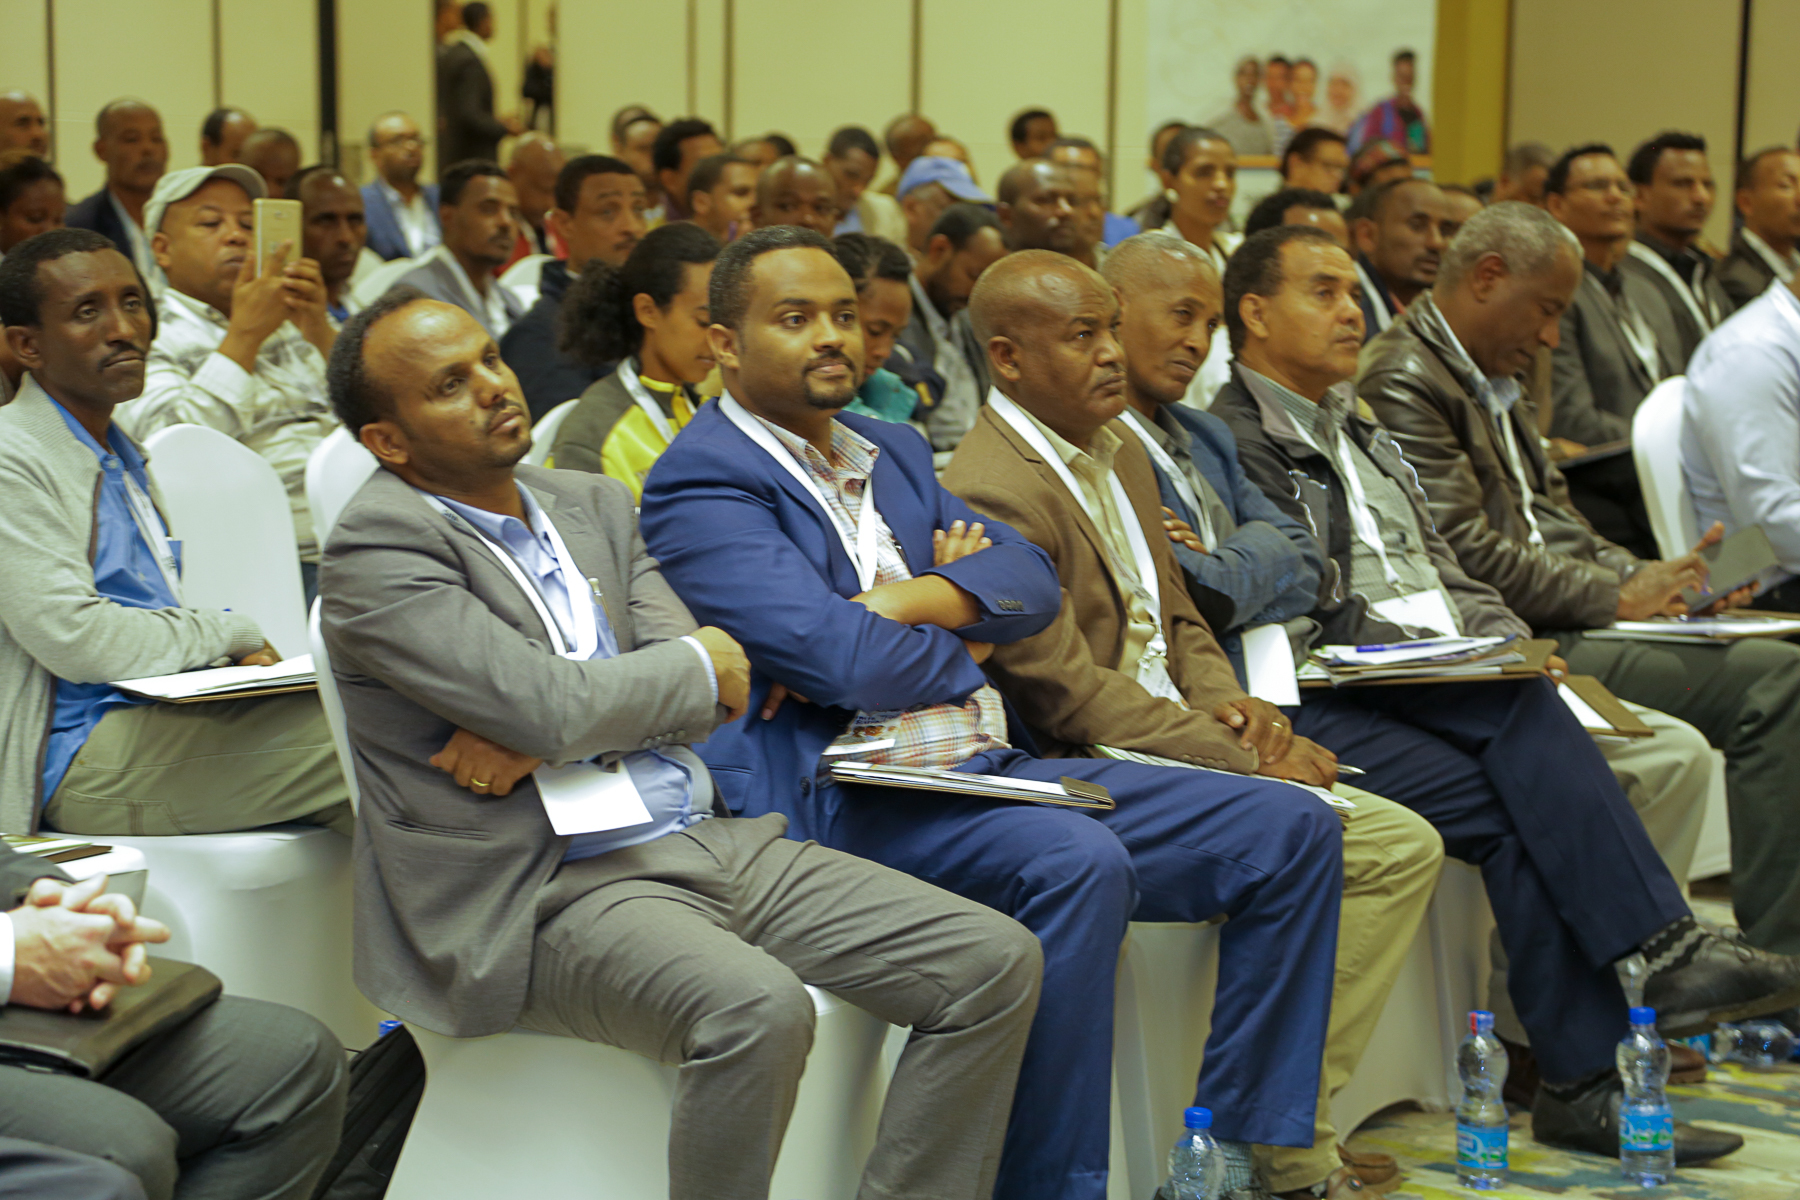 Ethiopia: Photos of the launch from 10/07/2019 in Addis Ababa